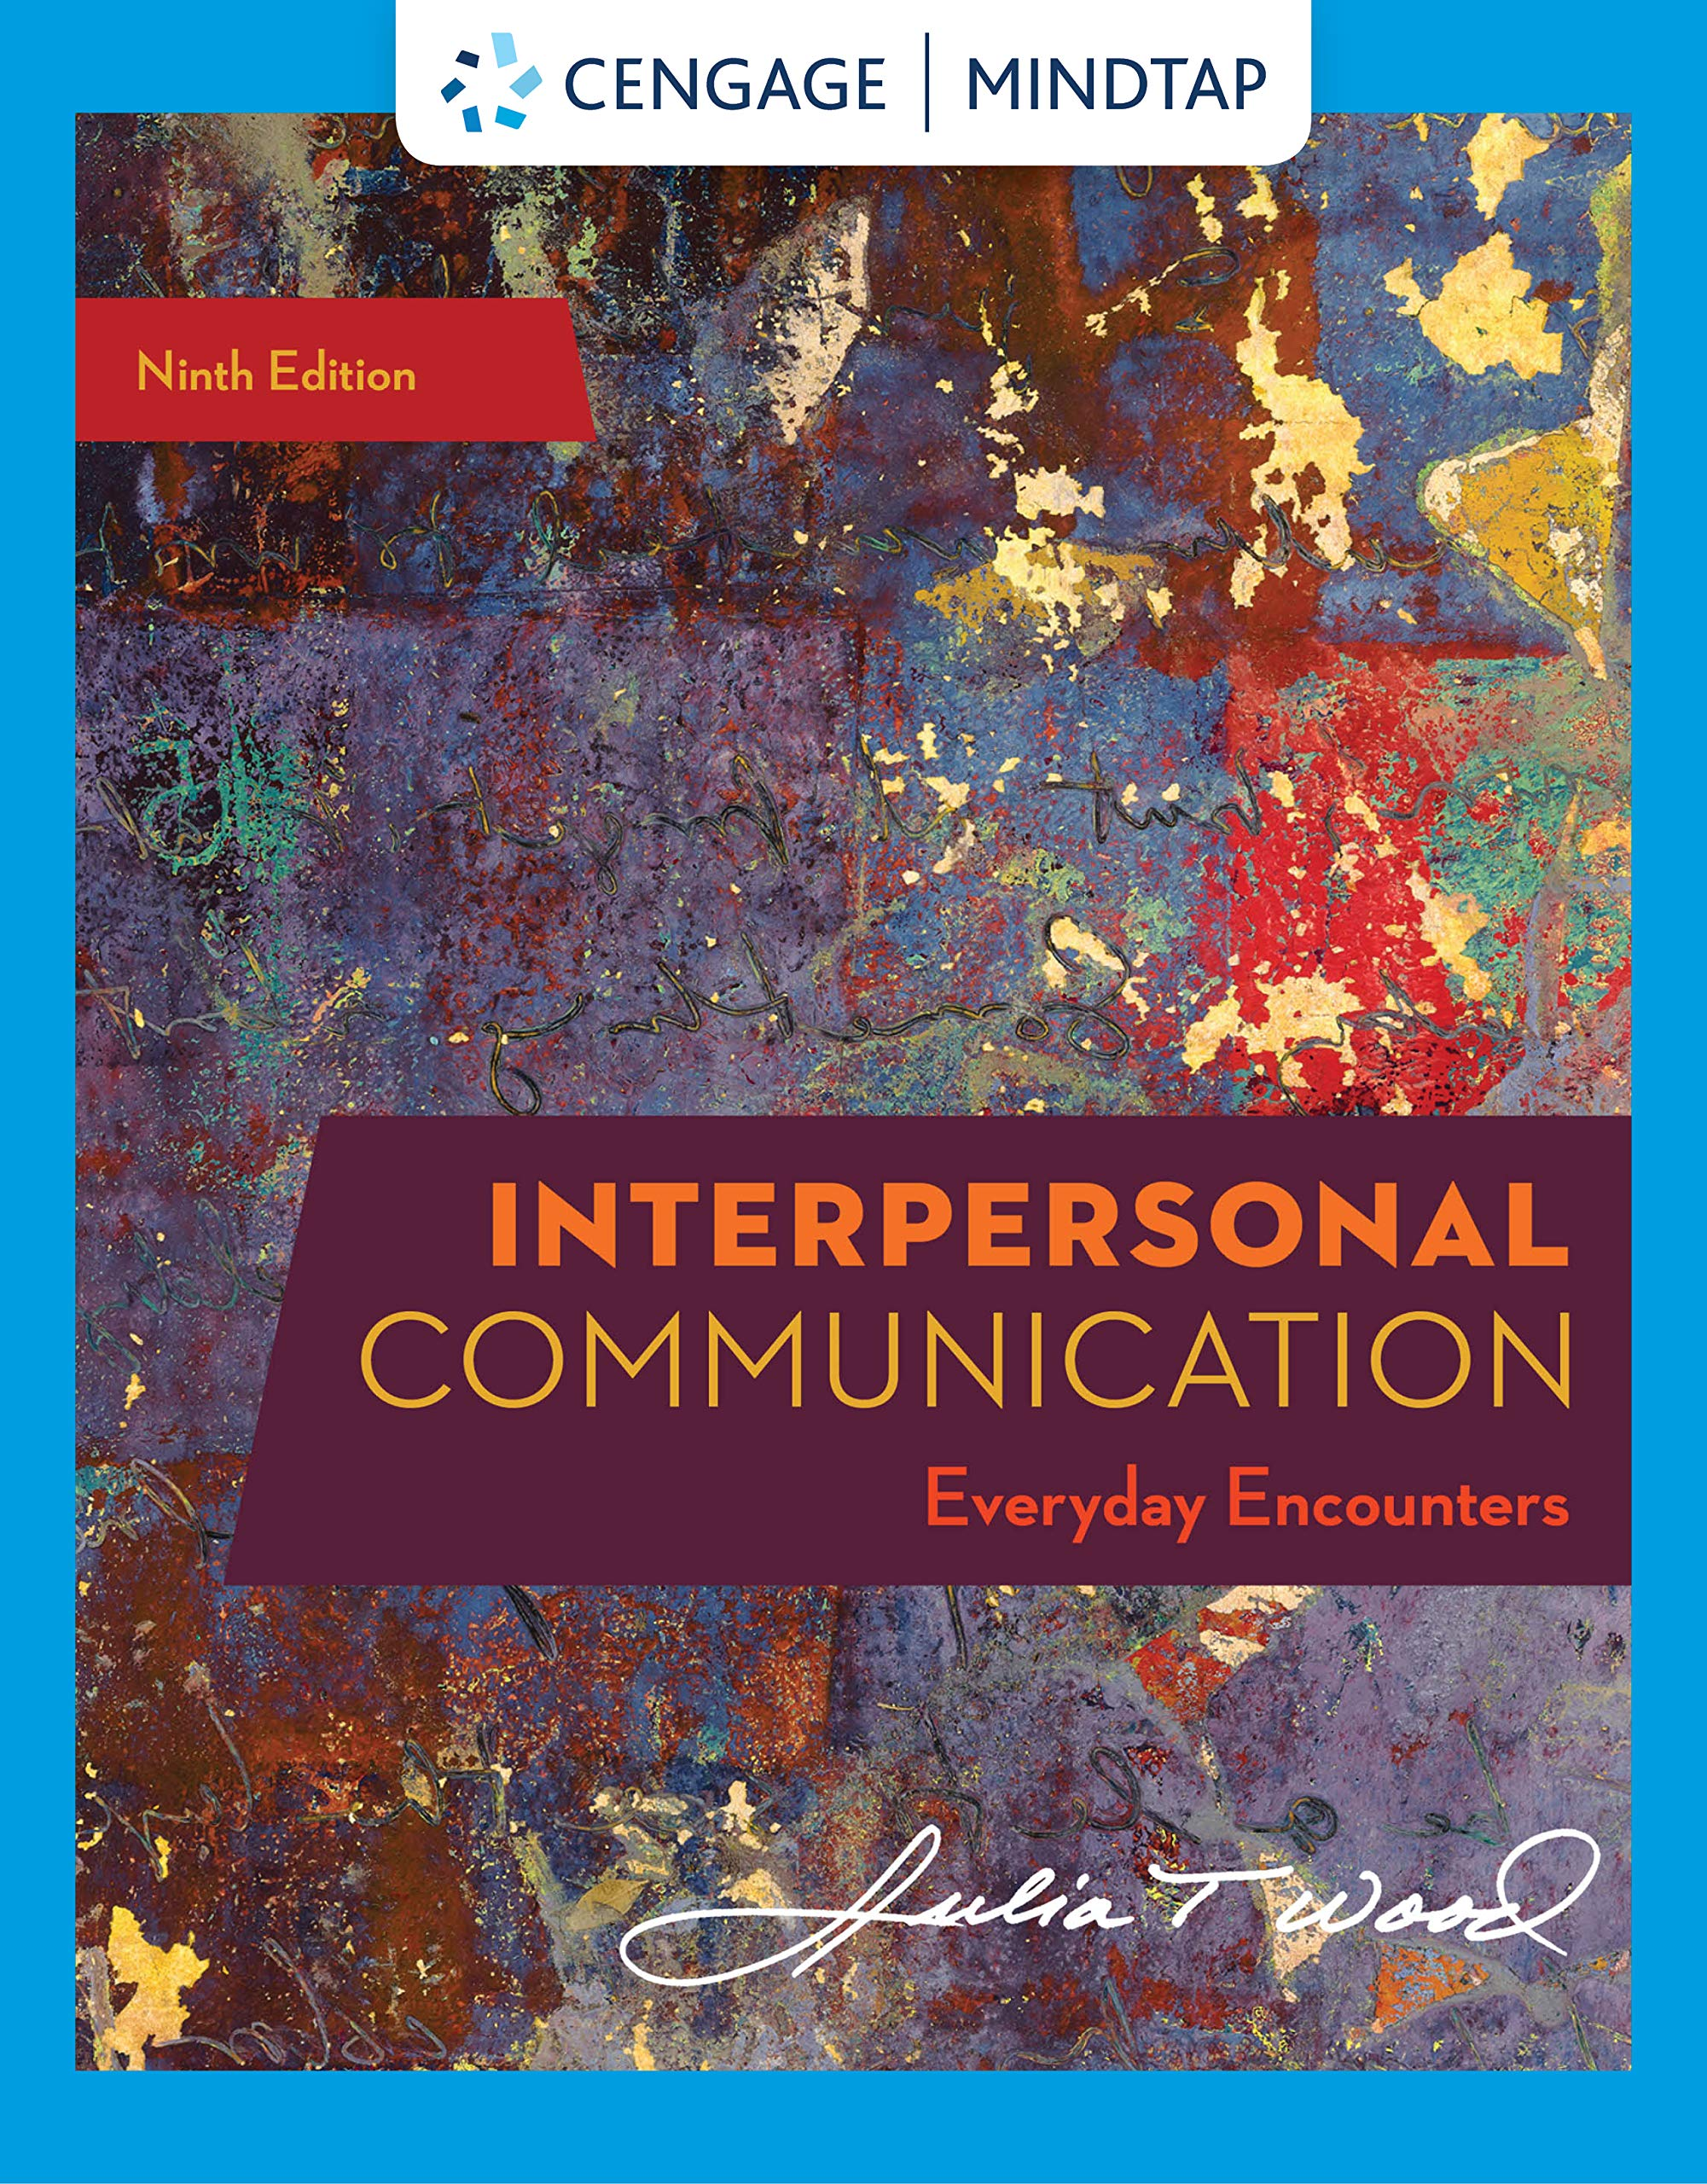 MindTap for Wood's Interpersonal Communication: Everyday Encounters, 9th Edition [PC Online code] by Cengage Learning